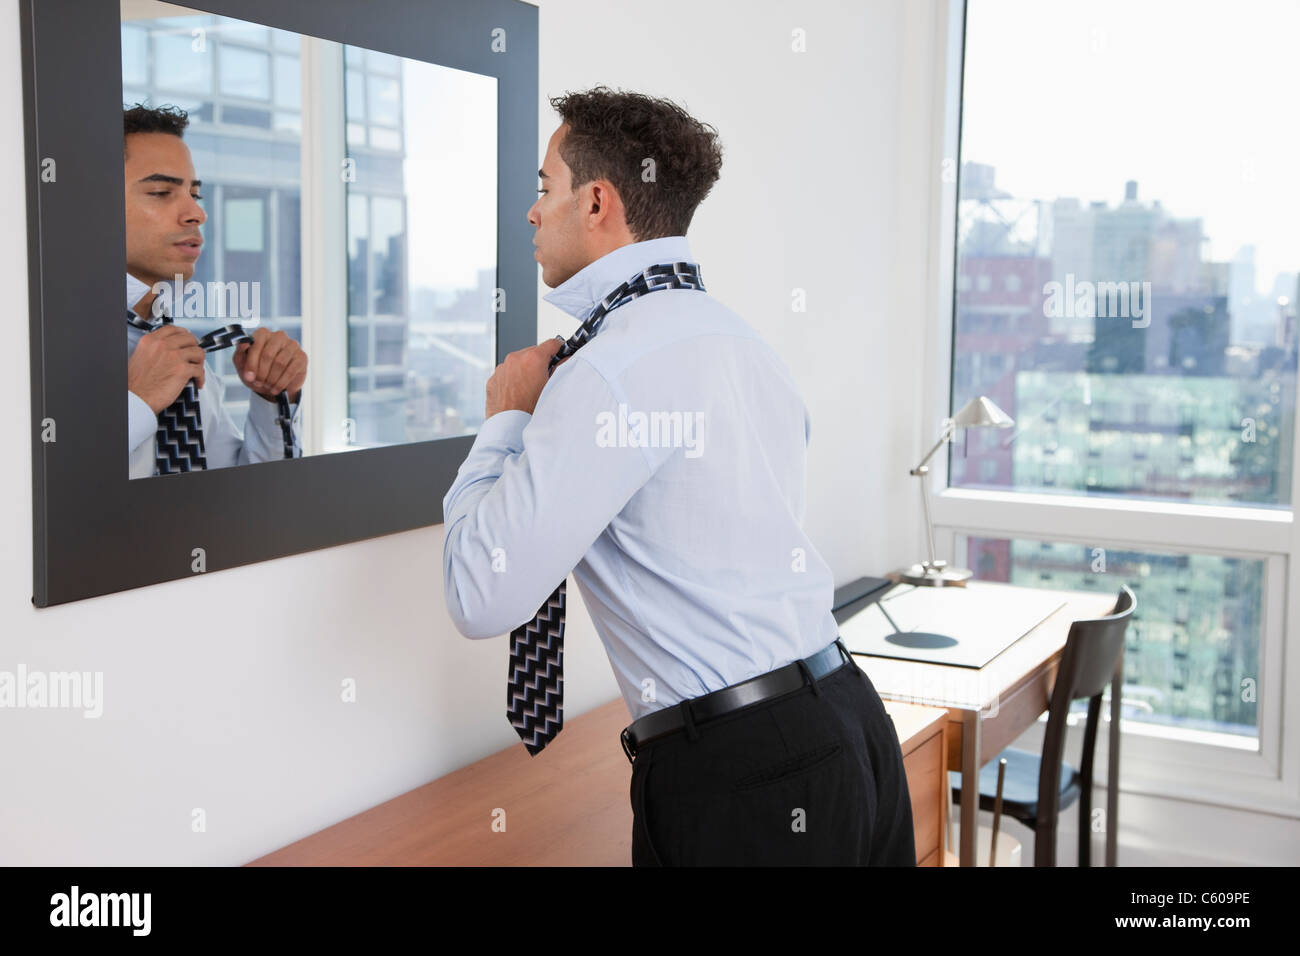 USA, New York, New York City, young man tying tie in front of mirror in hotel room - Stock Image